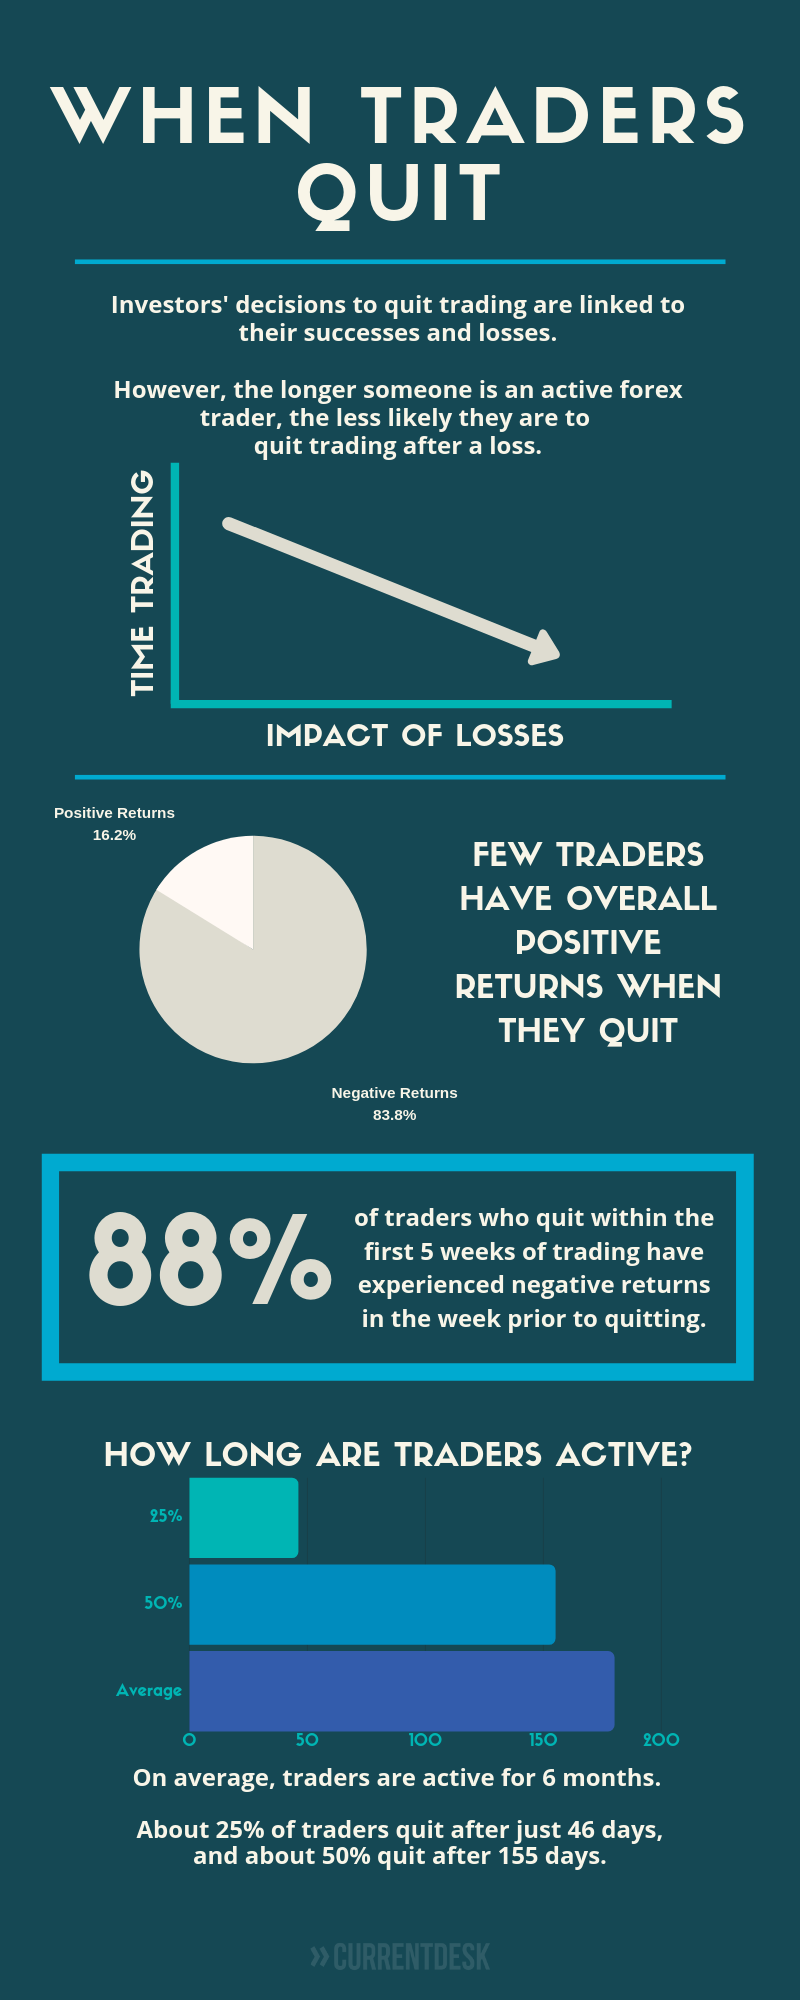 Why Traders Quit